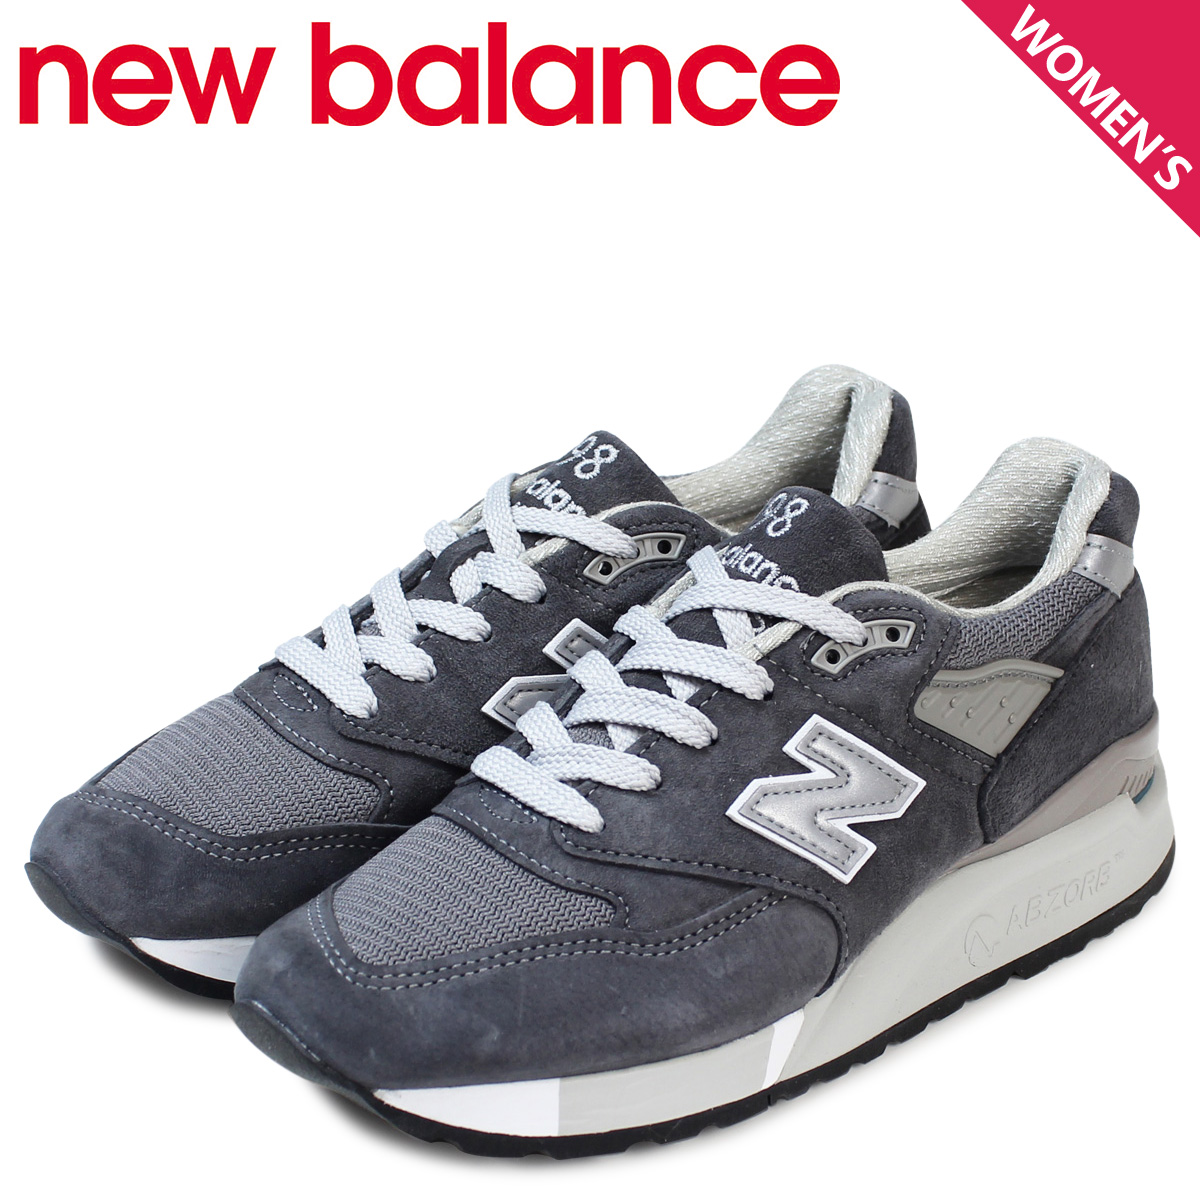 sale retailer de090 62768 New balance 998 women's sneakers new balance USA W998CH B y shoes blue [11  / 7 new in stock]